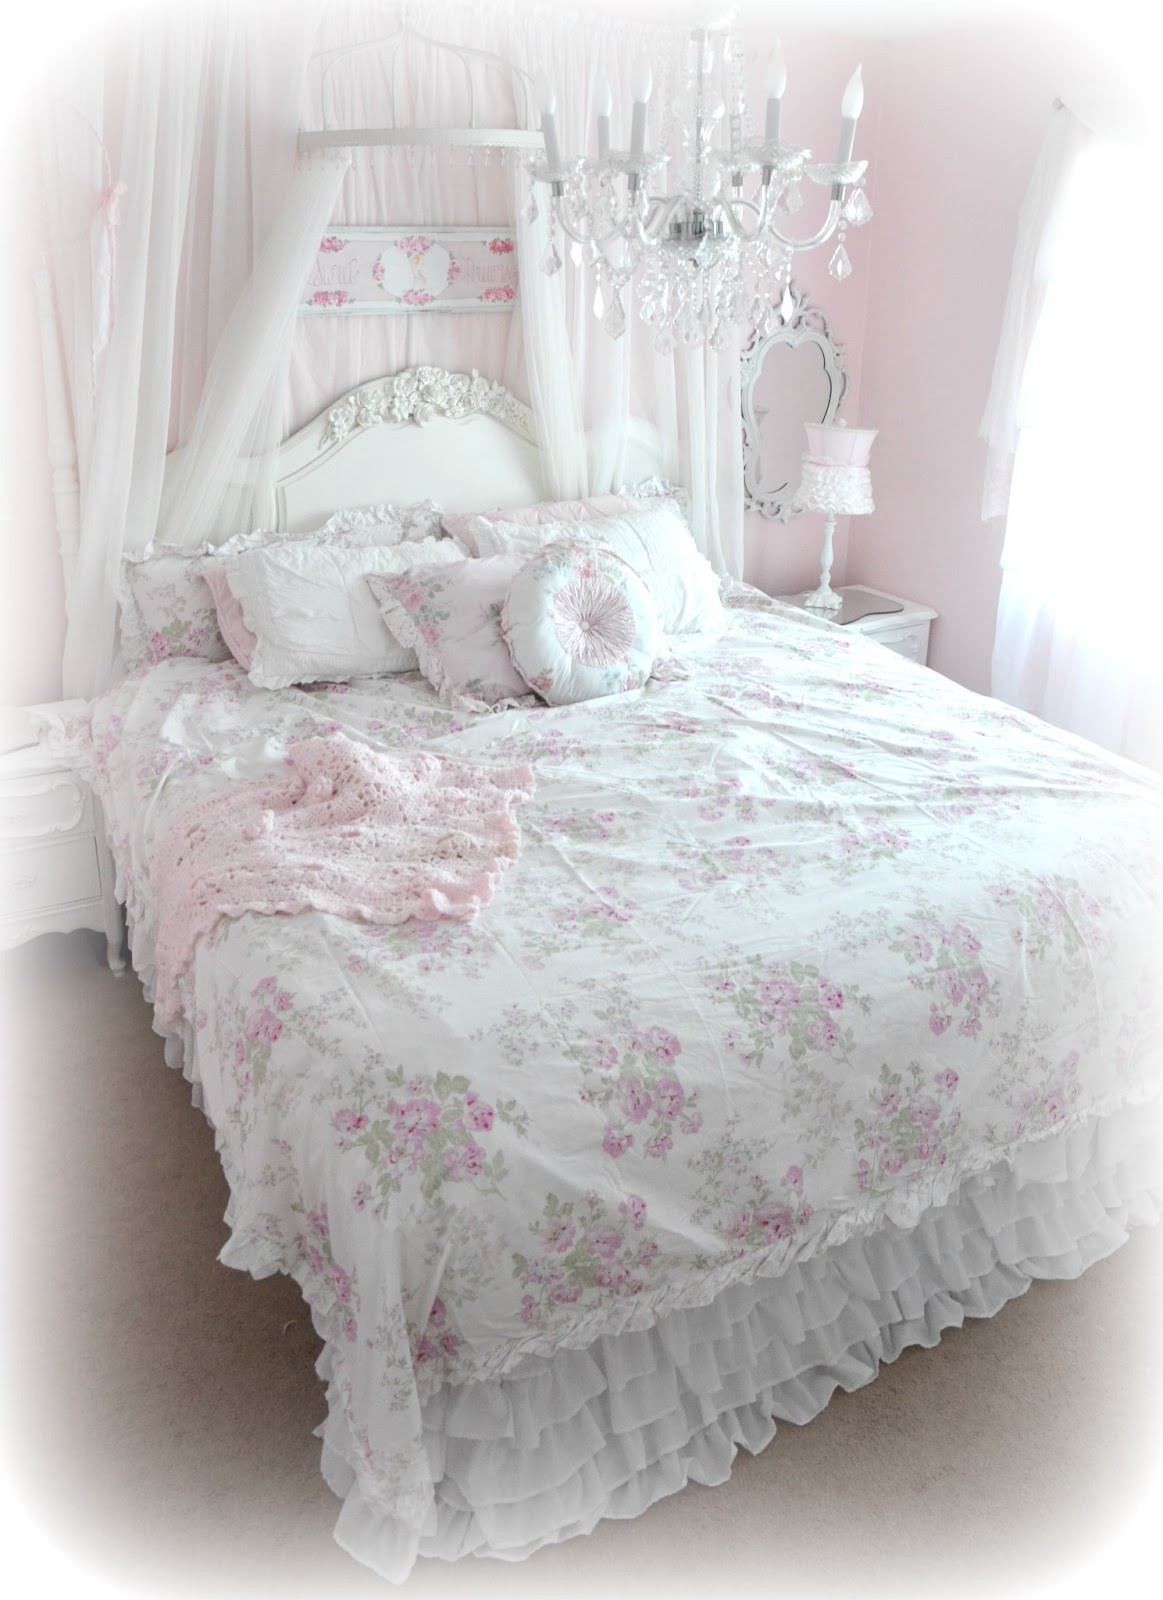 Best ideas about Shabby Chic Bedding . Save or Pin Not So Shabby Shabby Chic New Simply Shabby Chic Bedding Now.